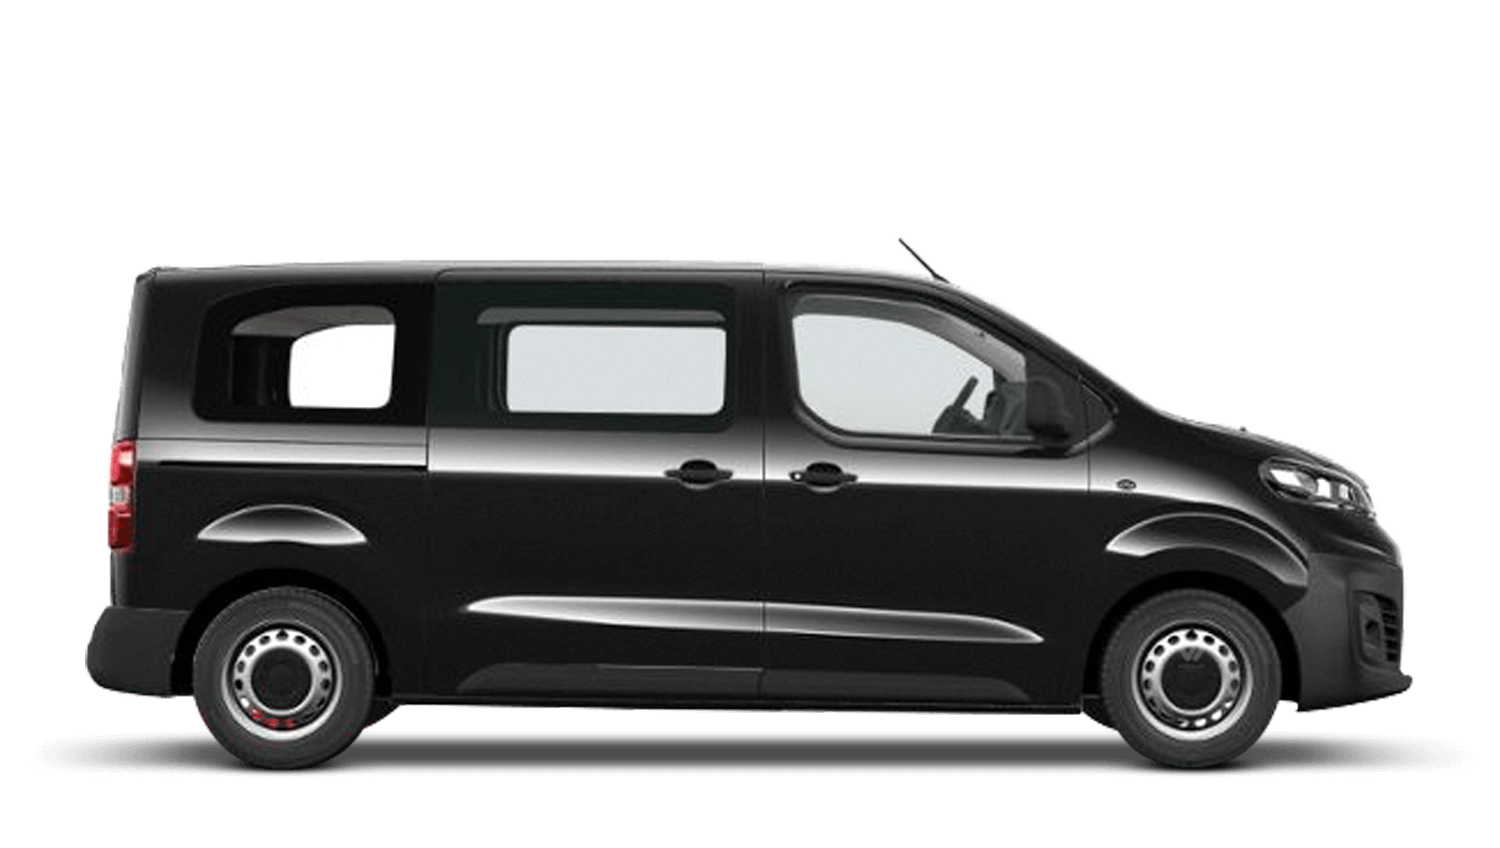 Diamond Black (Metallic) Vauxhall Vivaro Life